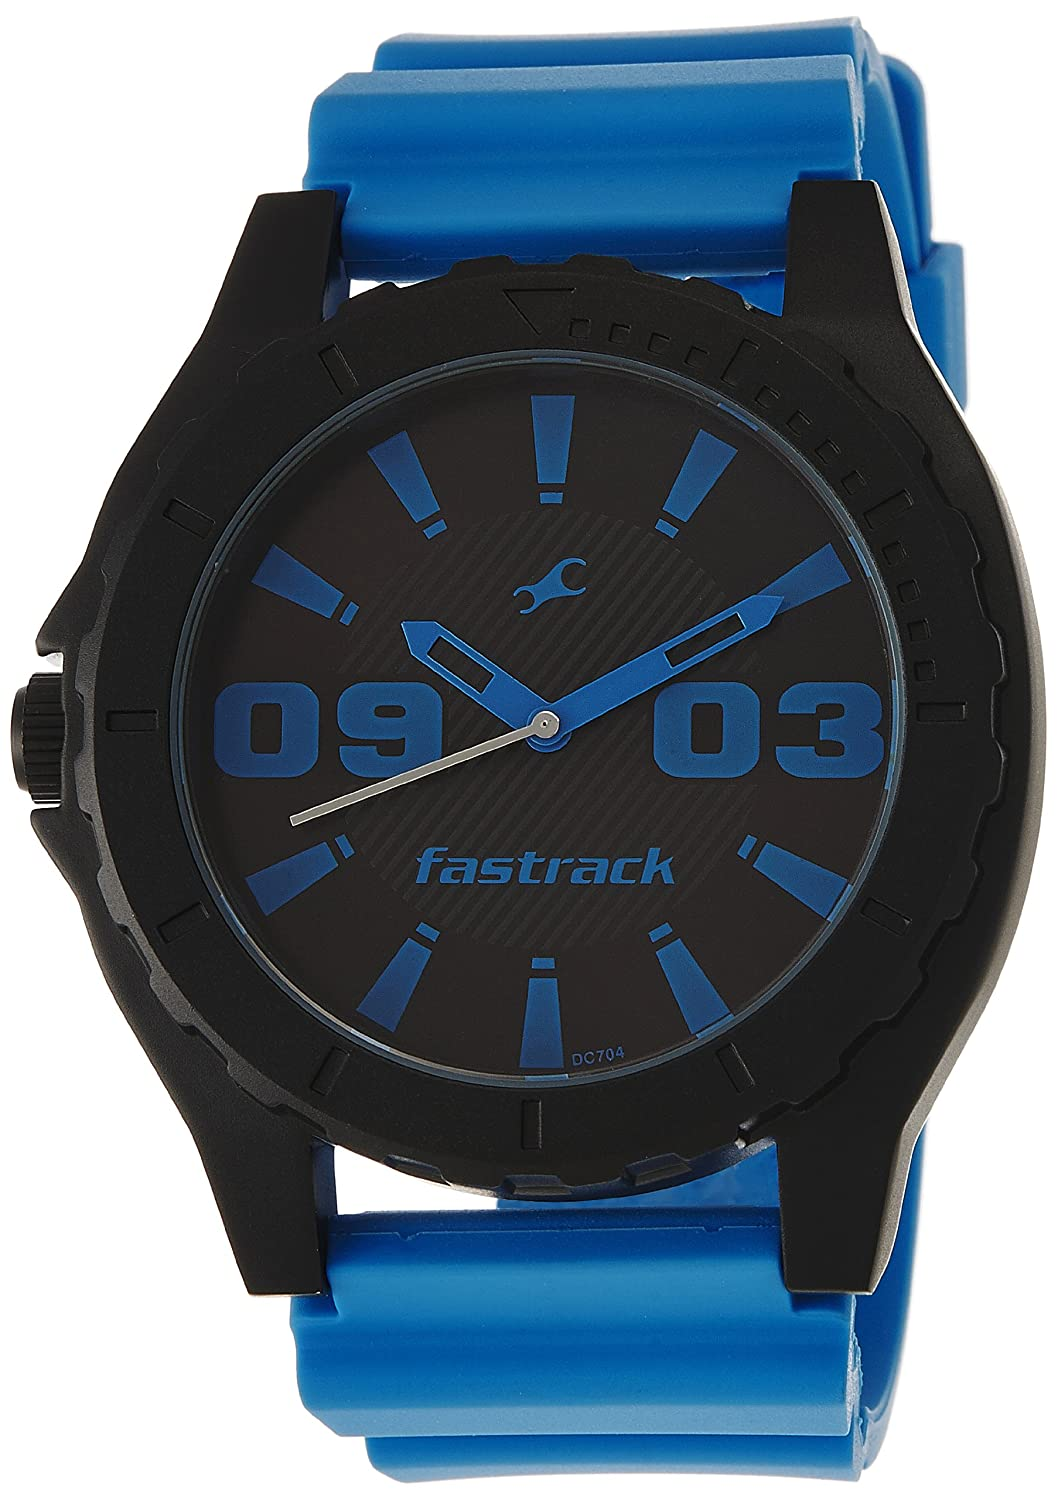 at black fastrack watches dp online s amazon buy prices ots low men in watch analog dial india sports